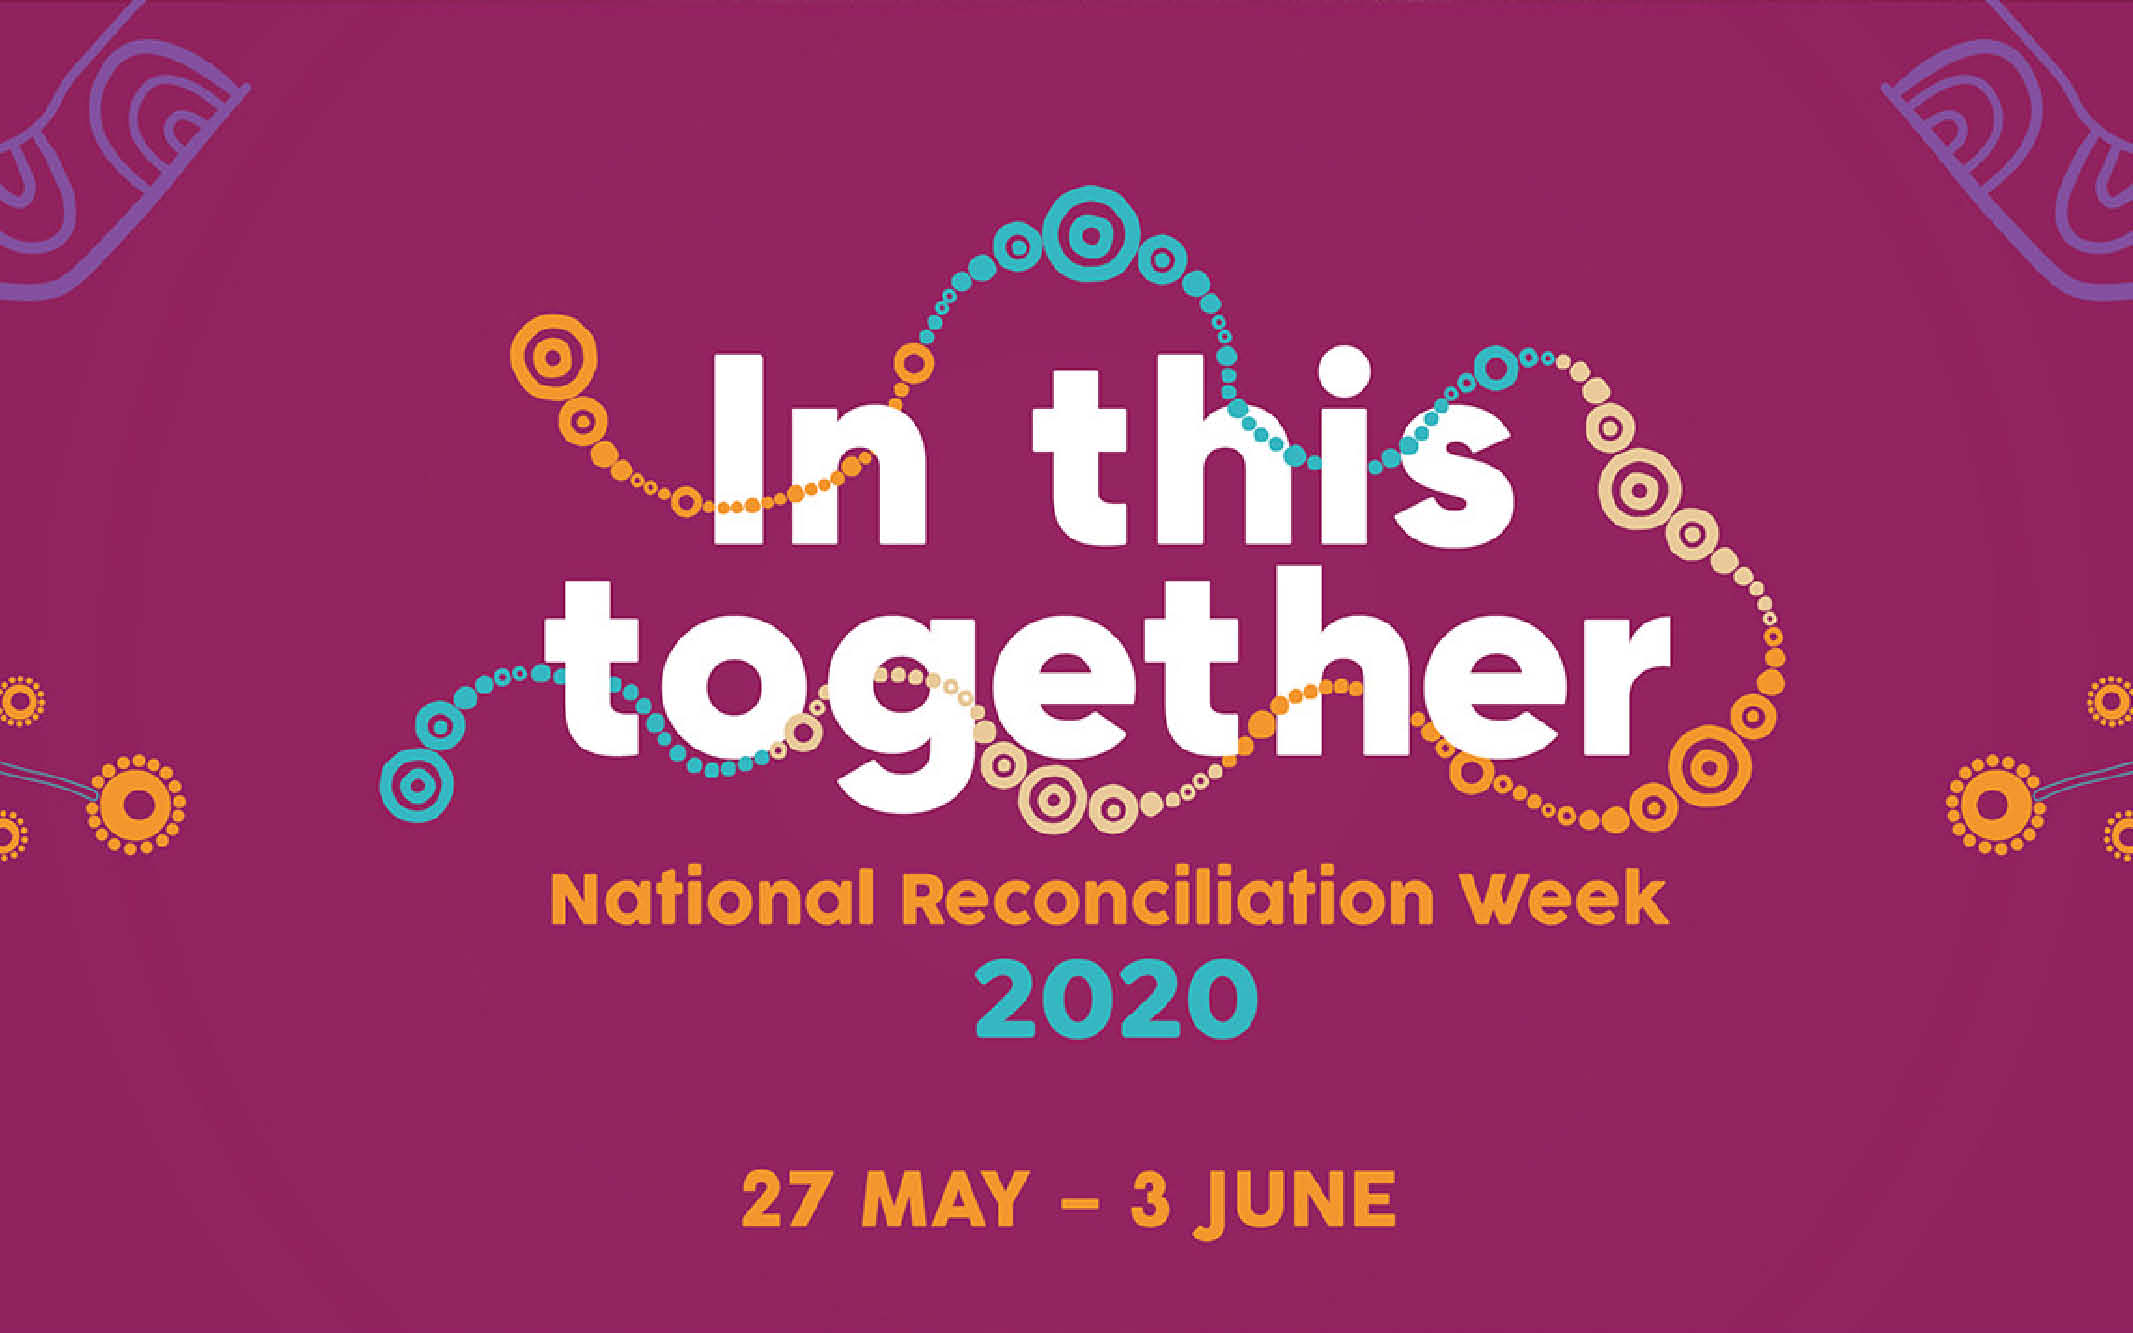 National Reconciliation Week 2020 - Multhana Property Services